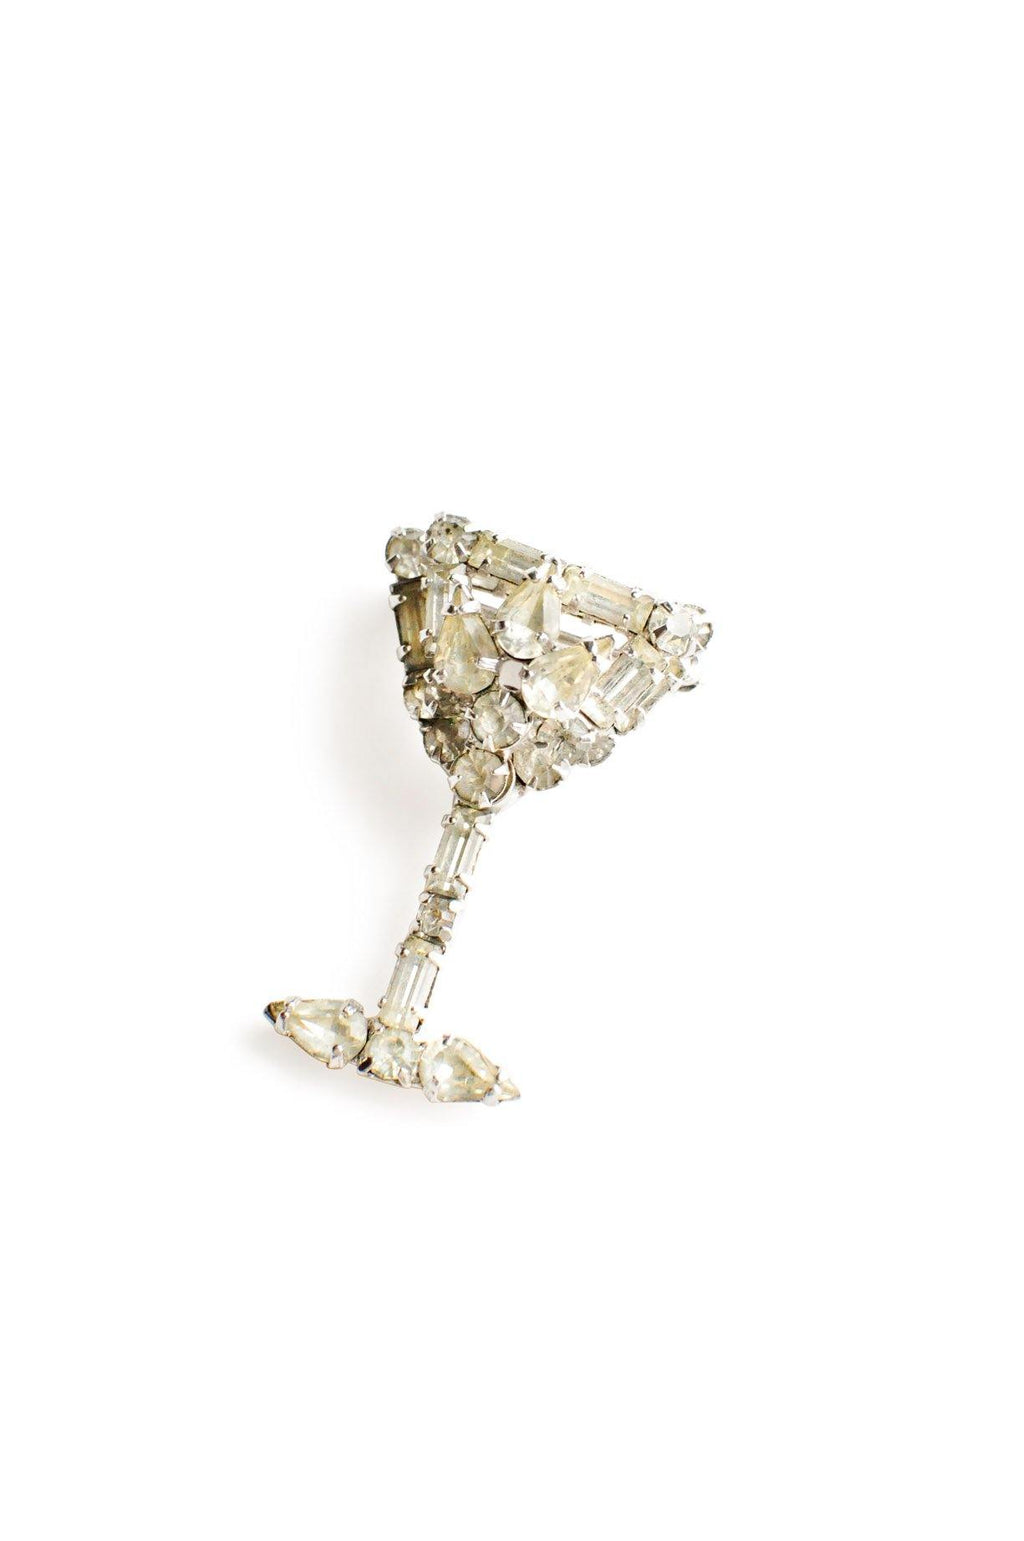 Rhinestone Cocktail Glass Brooch